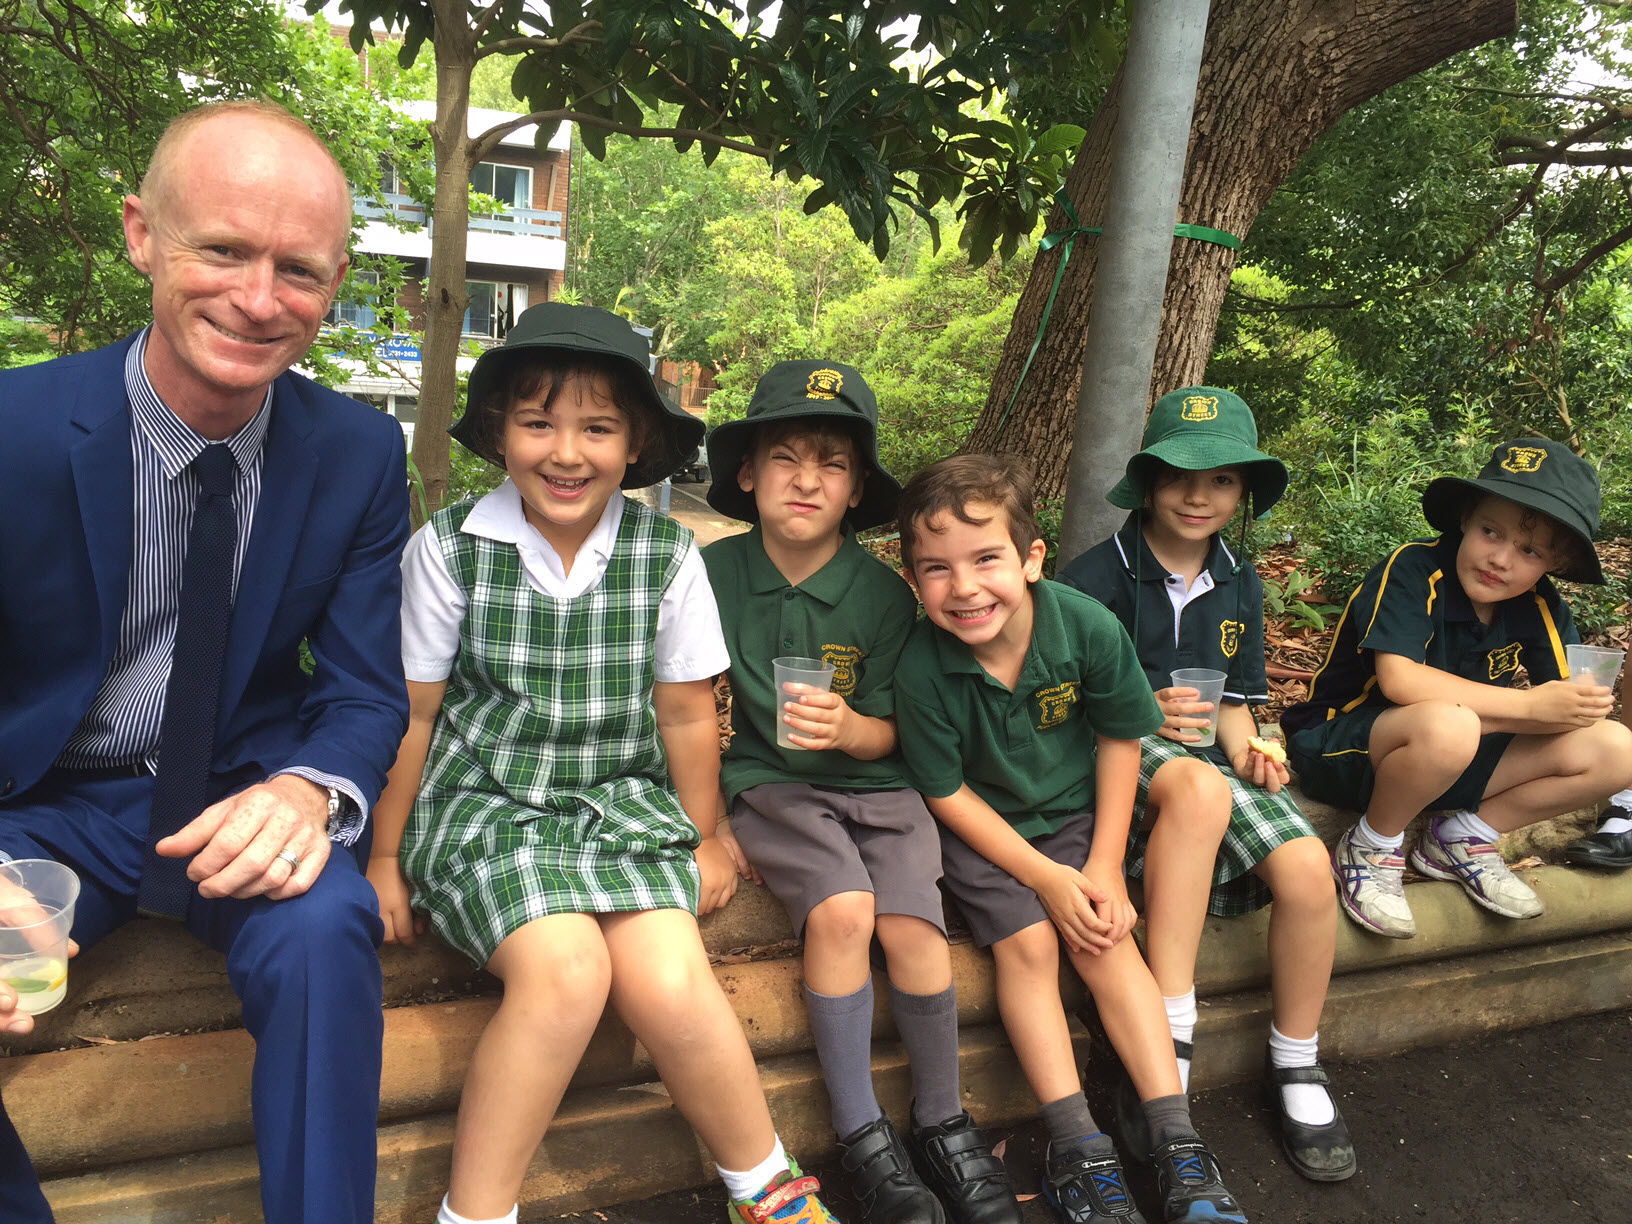 In 2015 we installed a beautiful new garden at the front of the school, funded by a City of Sydney Green Matching Grant. See our    LAUNCH PHOTOS   ,    BEFORE & AFTER PICS    and    FIND OUT MORE